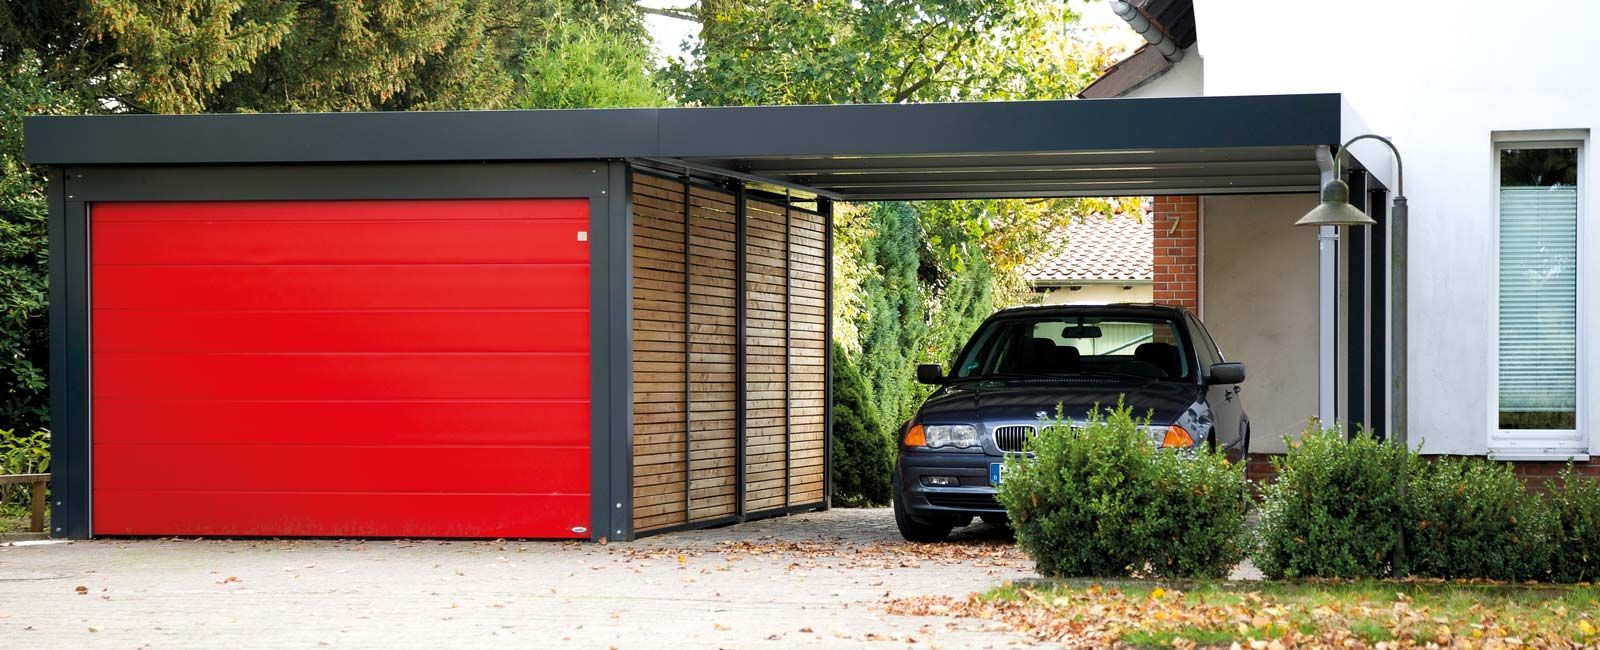 carport mit sektionaltor von siebau carport. Black Bedroom Furniture Sets. Home Design Ideas